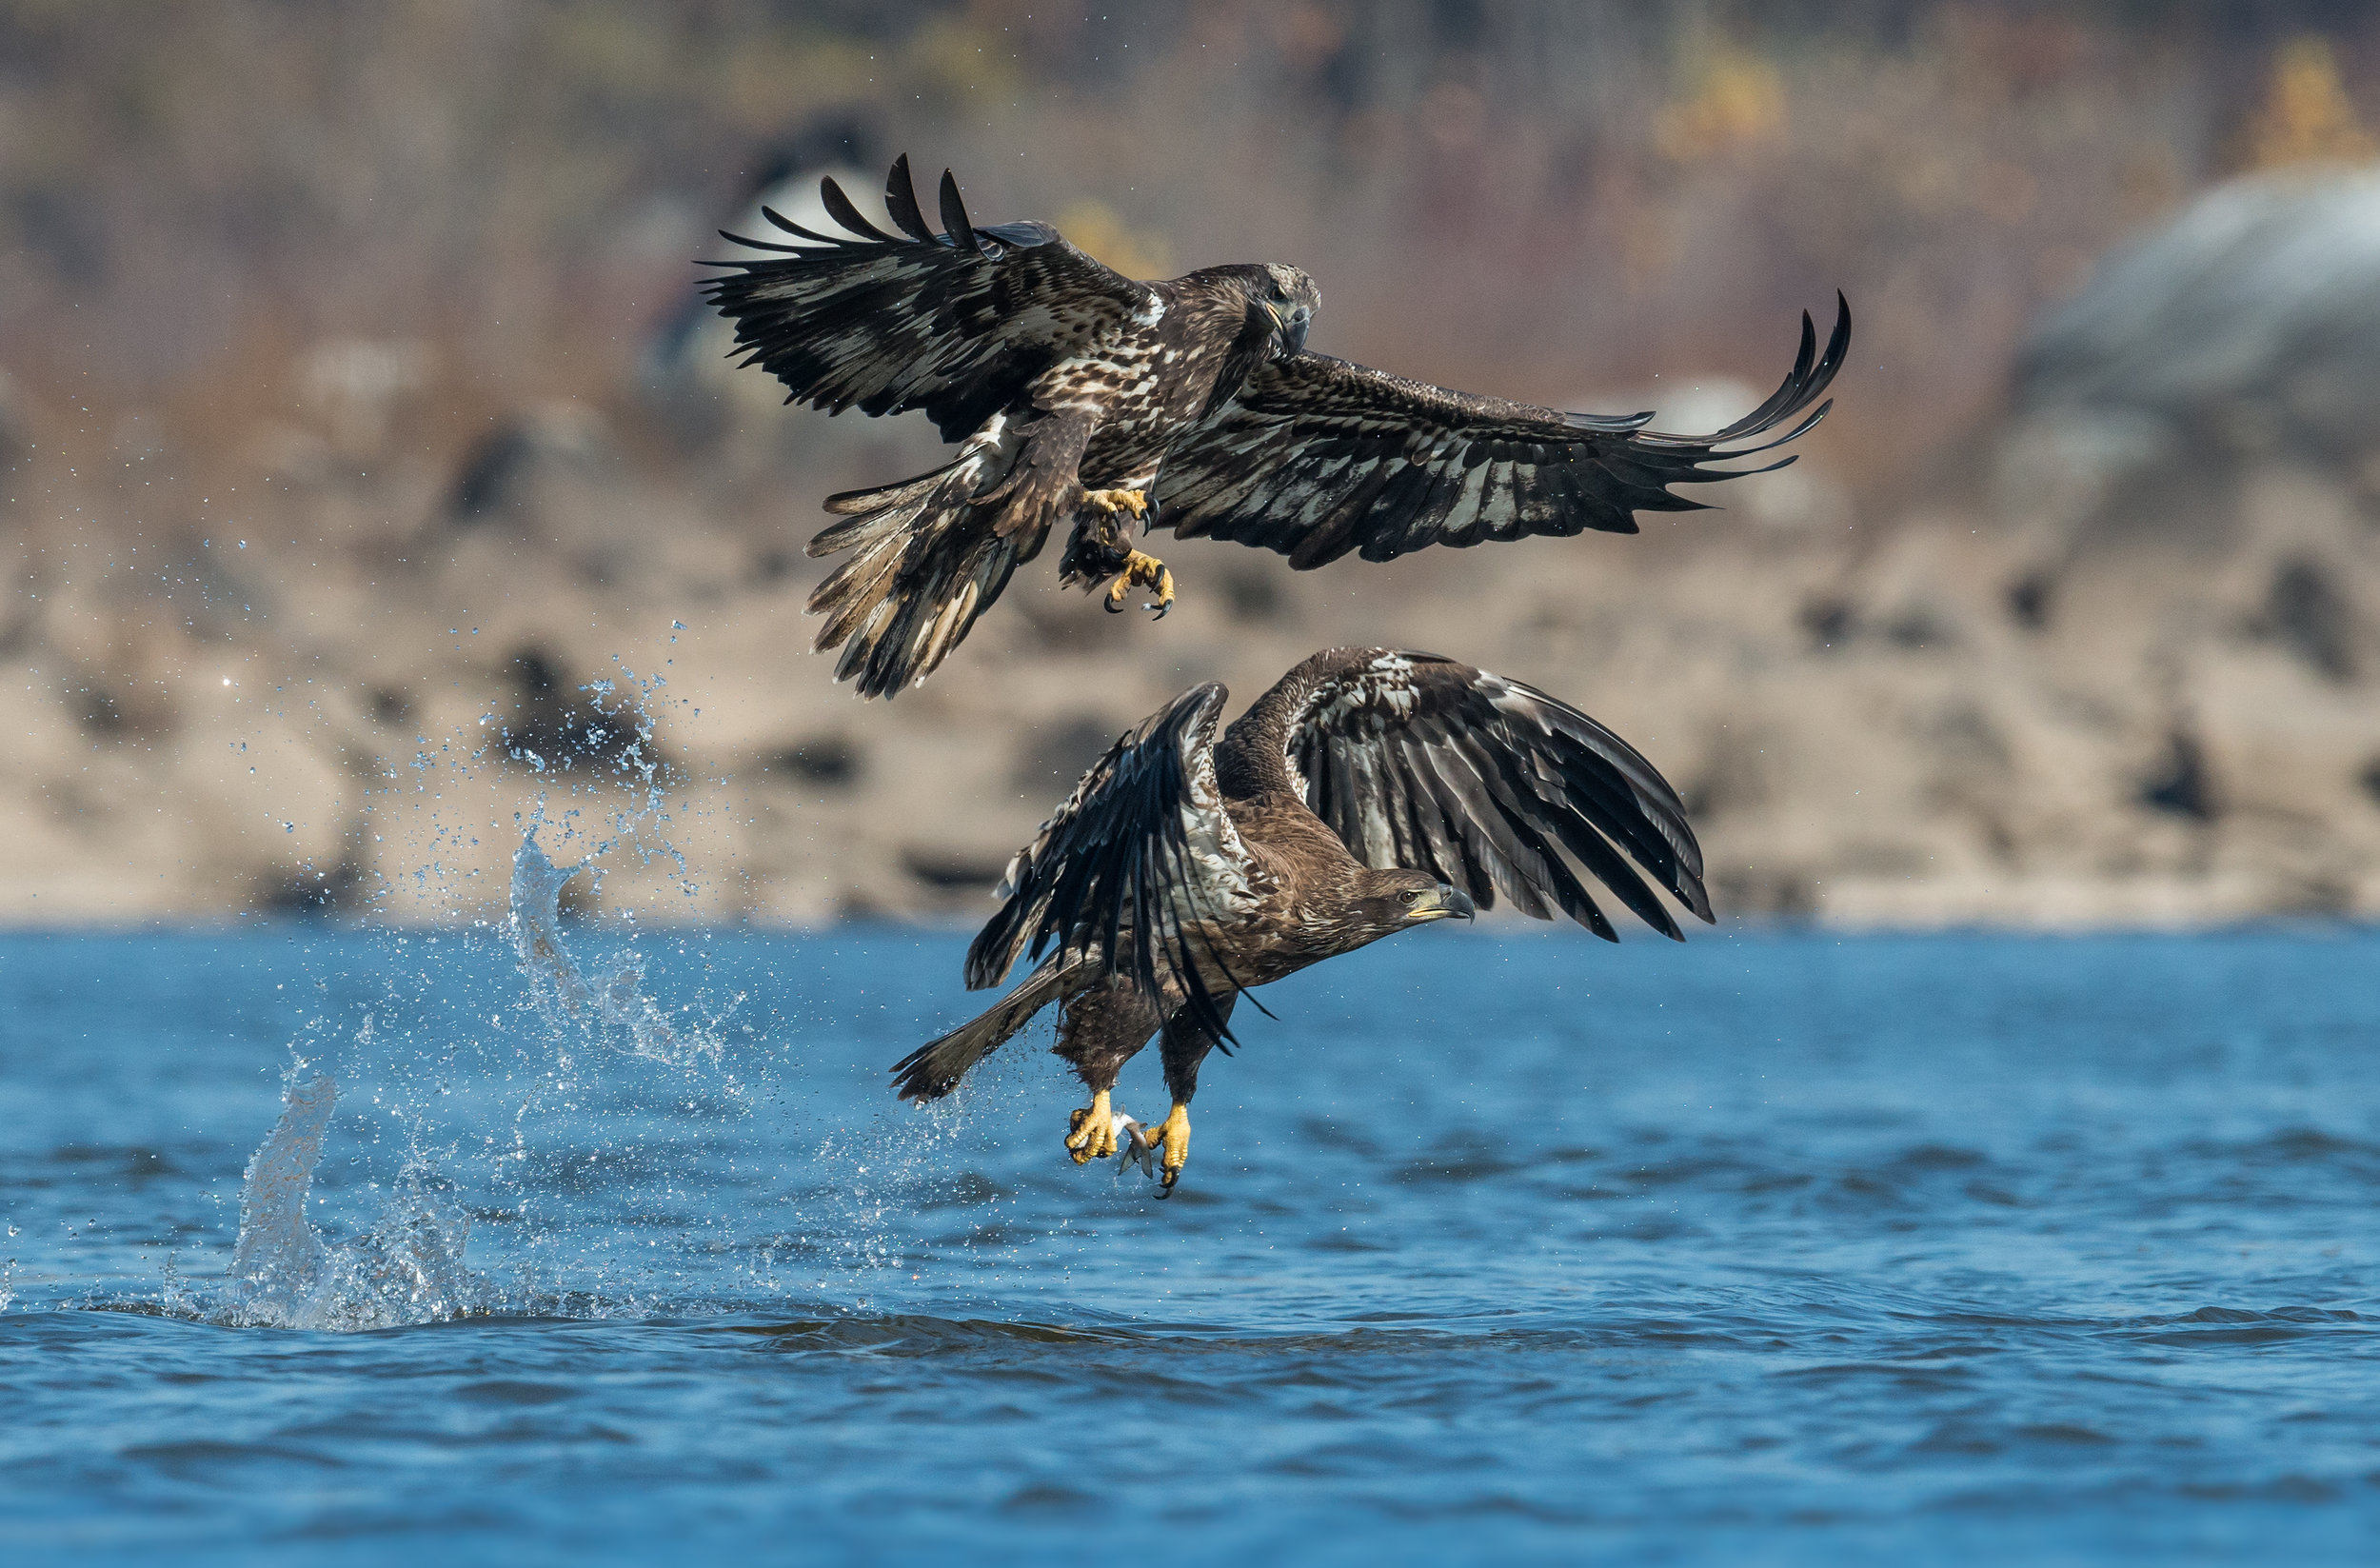 Juvenile Bald Eagles - This photo is of 2 juvenile bald eagles that were both after the same fish in Northern Maryland. I always prefer low level shots (as low as possible). When there is the opportunity to get a bird in flight at this perspective just above a surface of some sort, in this case the water, it makes the photo that much better because you are able to blur both the foreground and background. What made this photo particularly challenging was getting both birds fully in focus which to be perfectly honest was more a case of luck as the birds were at the perfect distance from me and were in the same focal plane. This photo was taken using a single autofocus point on a Nikon D5 & 600mm f4 VR lens: Manual Mode:1/2000 shutter speed, f7.1, ISO 1000